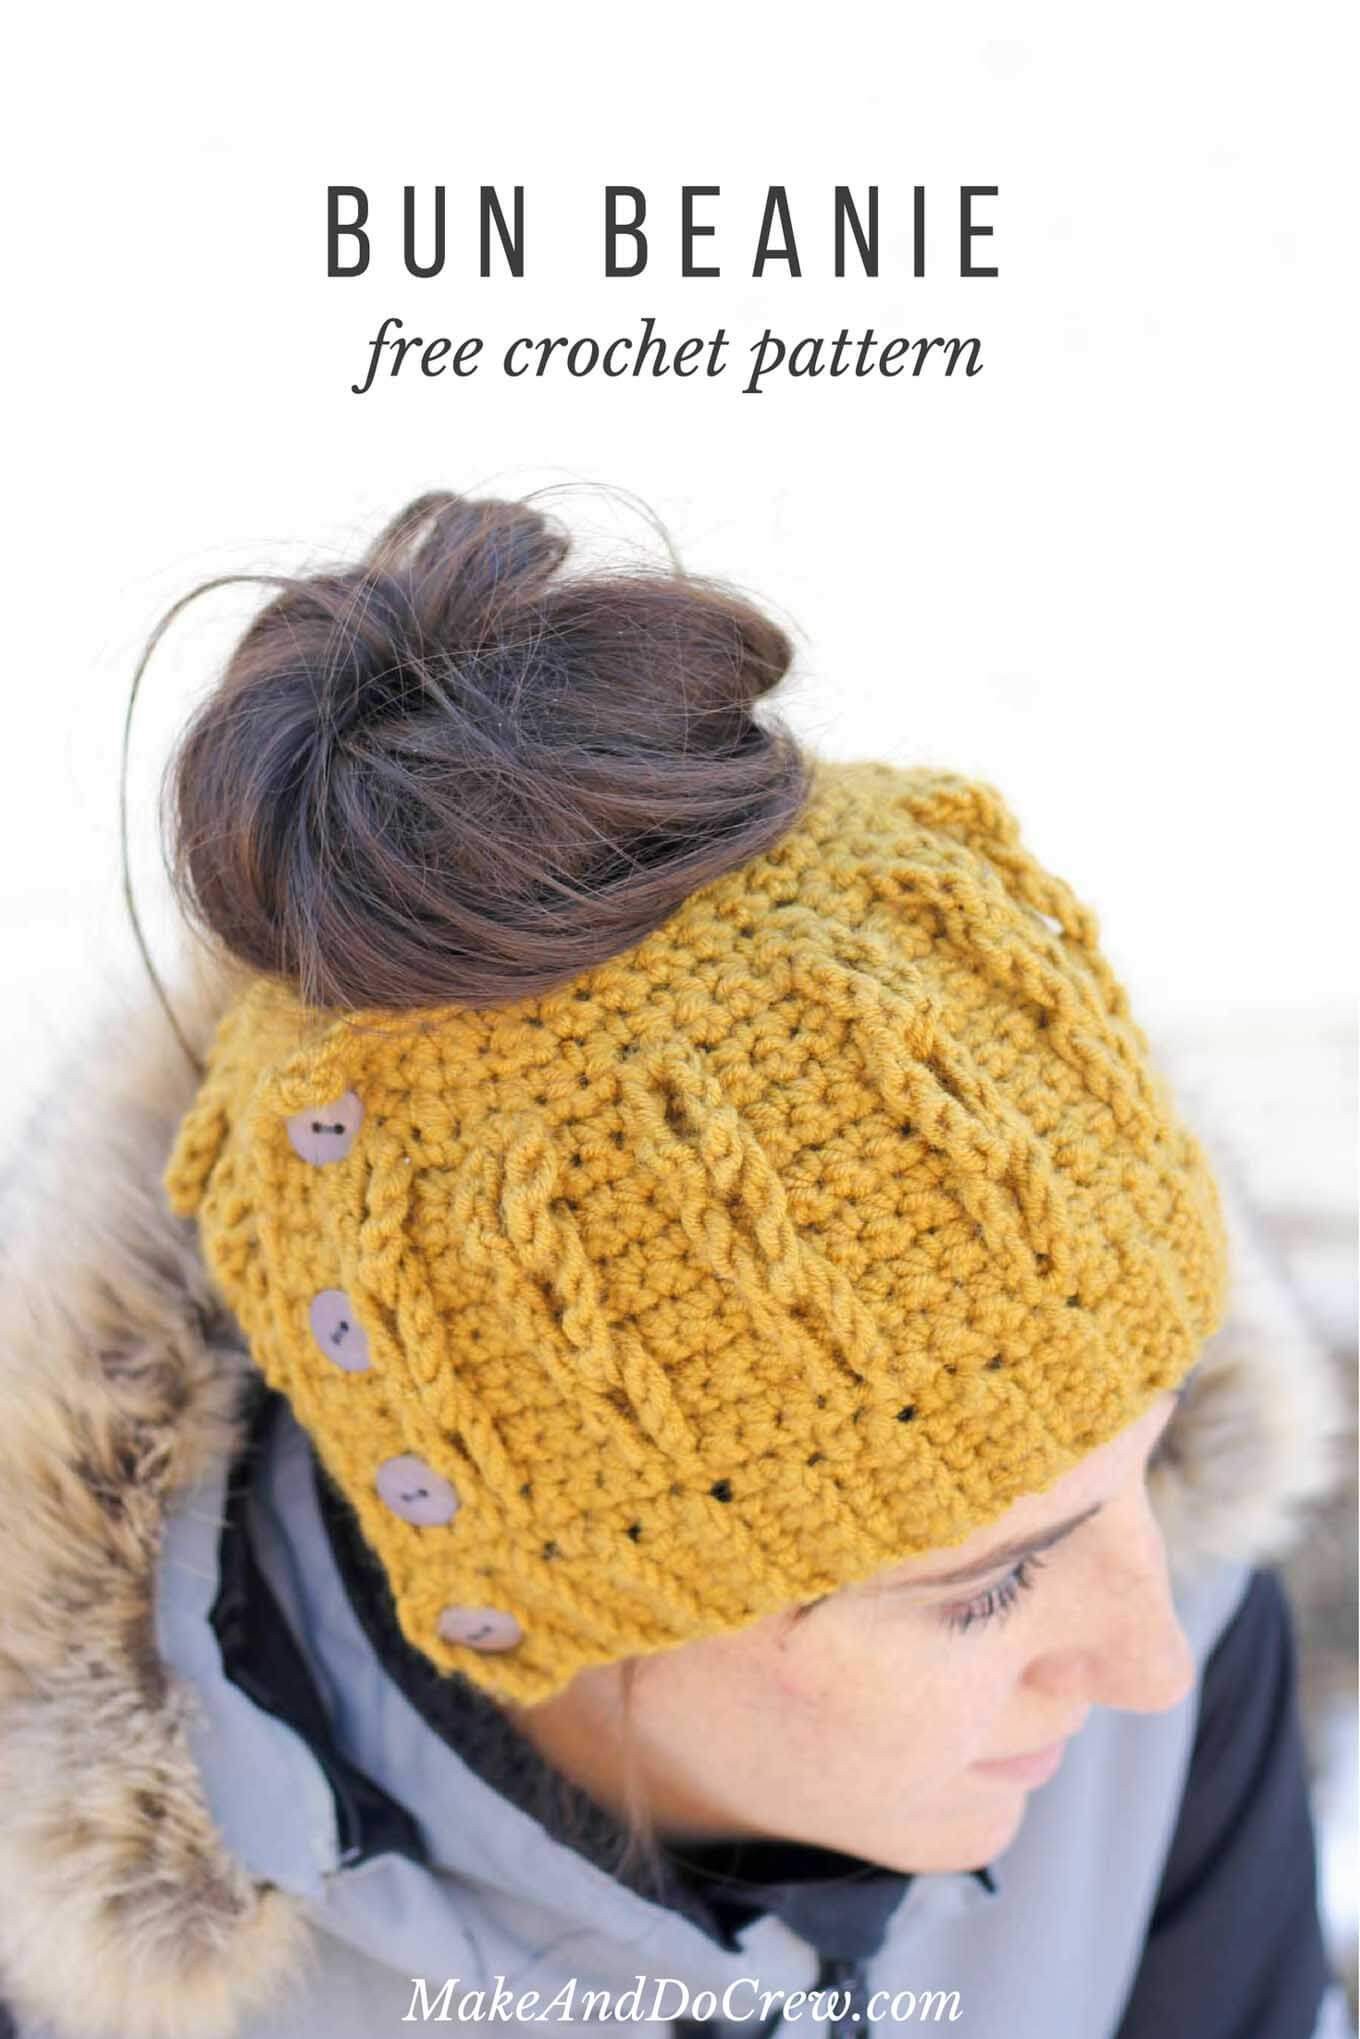 Crochet Messy Bun Beanie Elegant Crochet Bun Beanie with Faux Cables Free Pattern and Of New 43 Photos Crochet Messy Bun Beanie